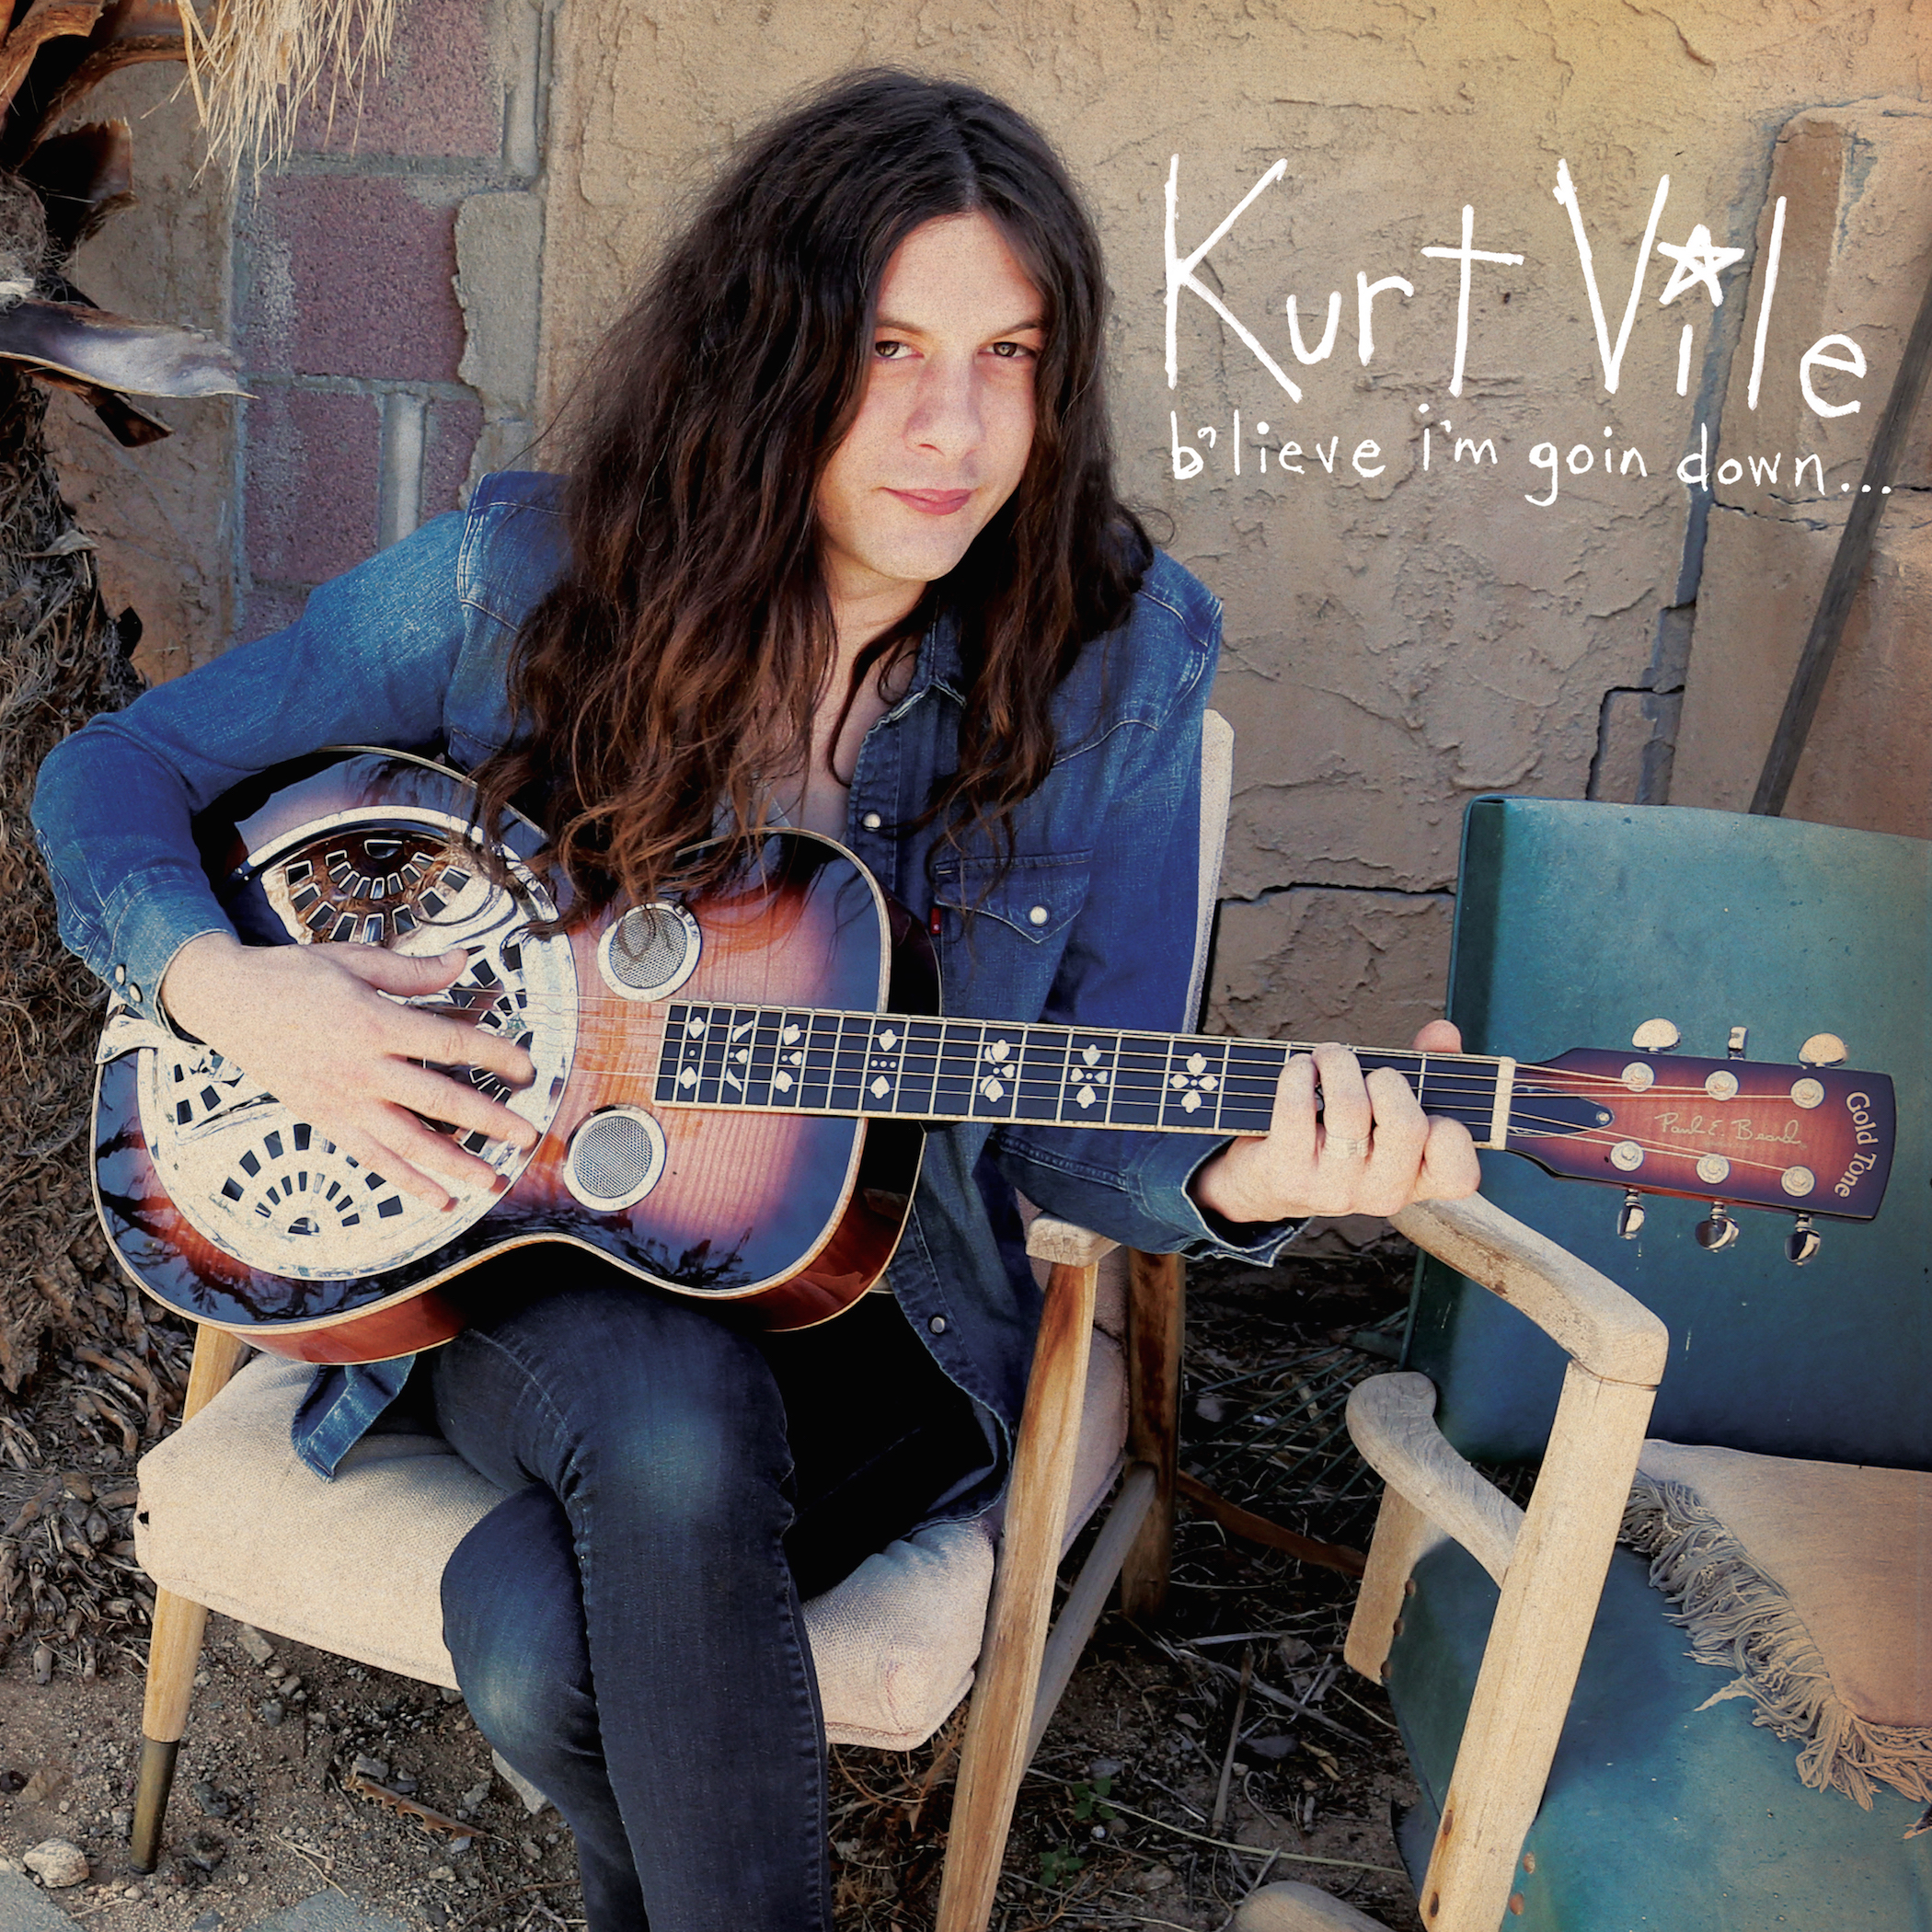 Kurt vile has shared details of his forthcoming LP 'b'lieve i'm goin down', out Setember 25, on Matador